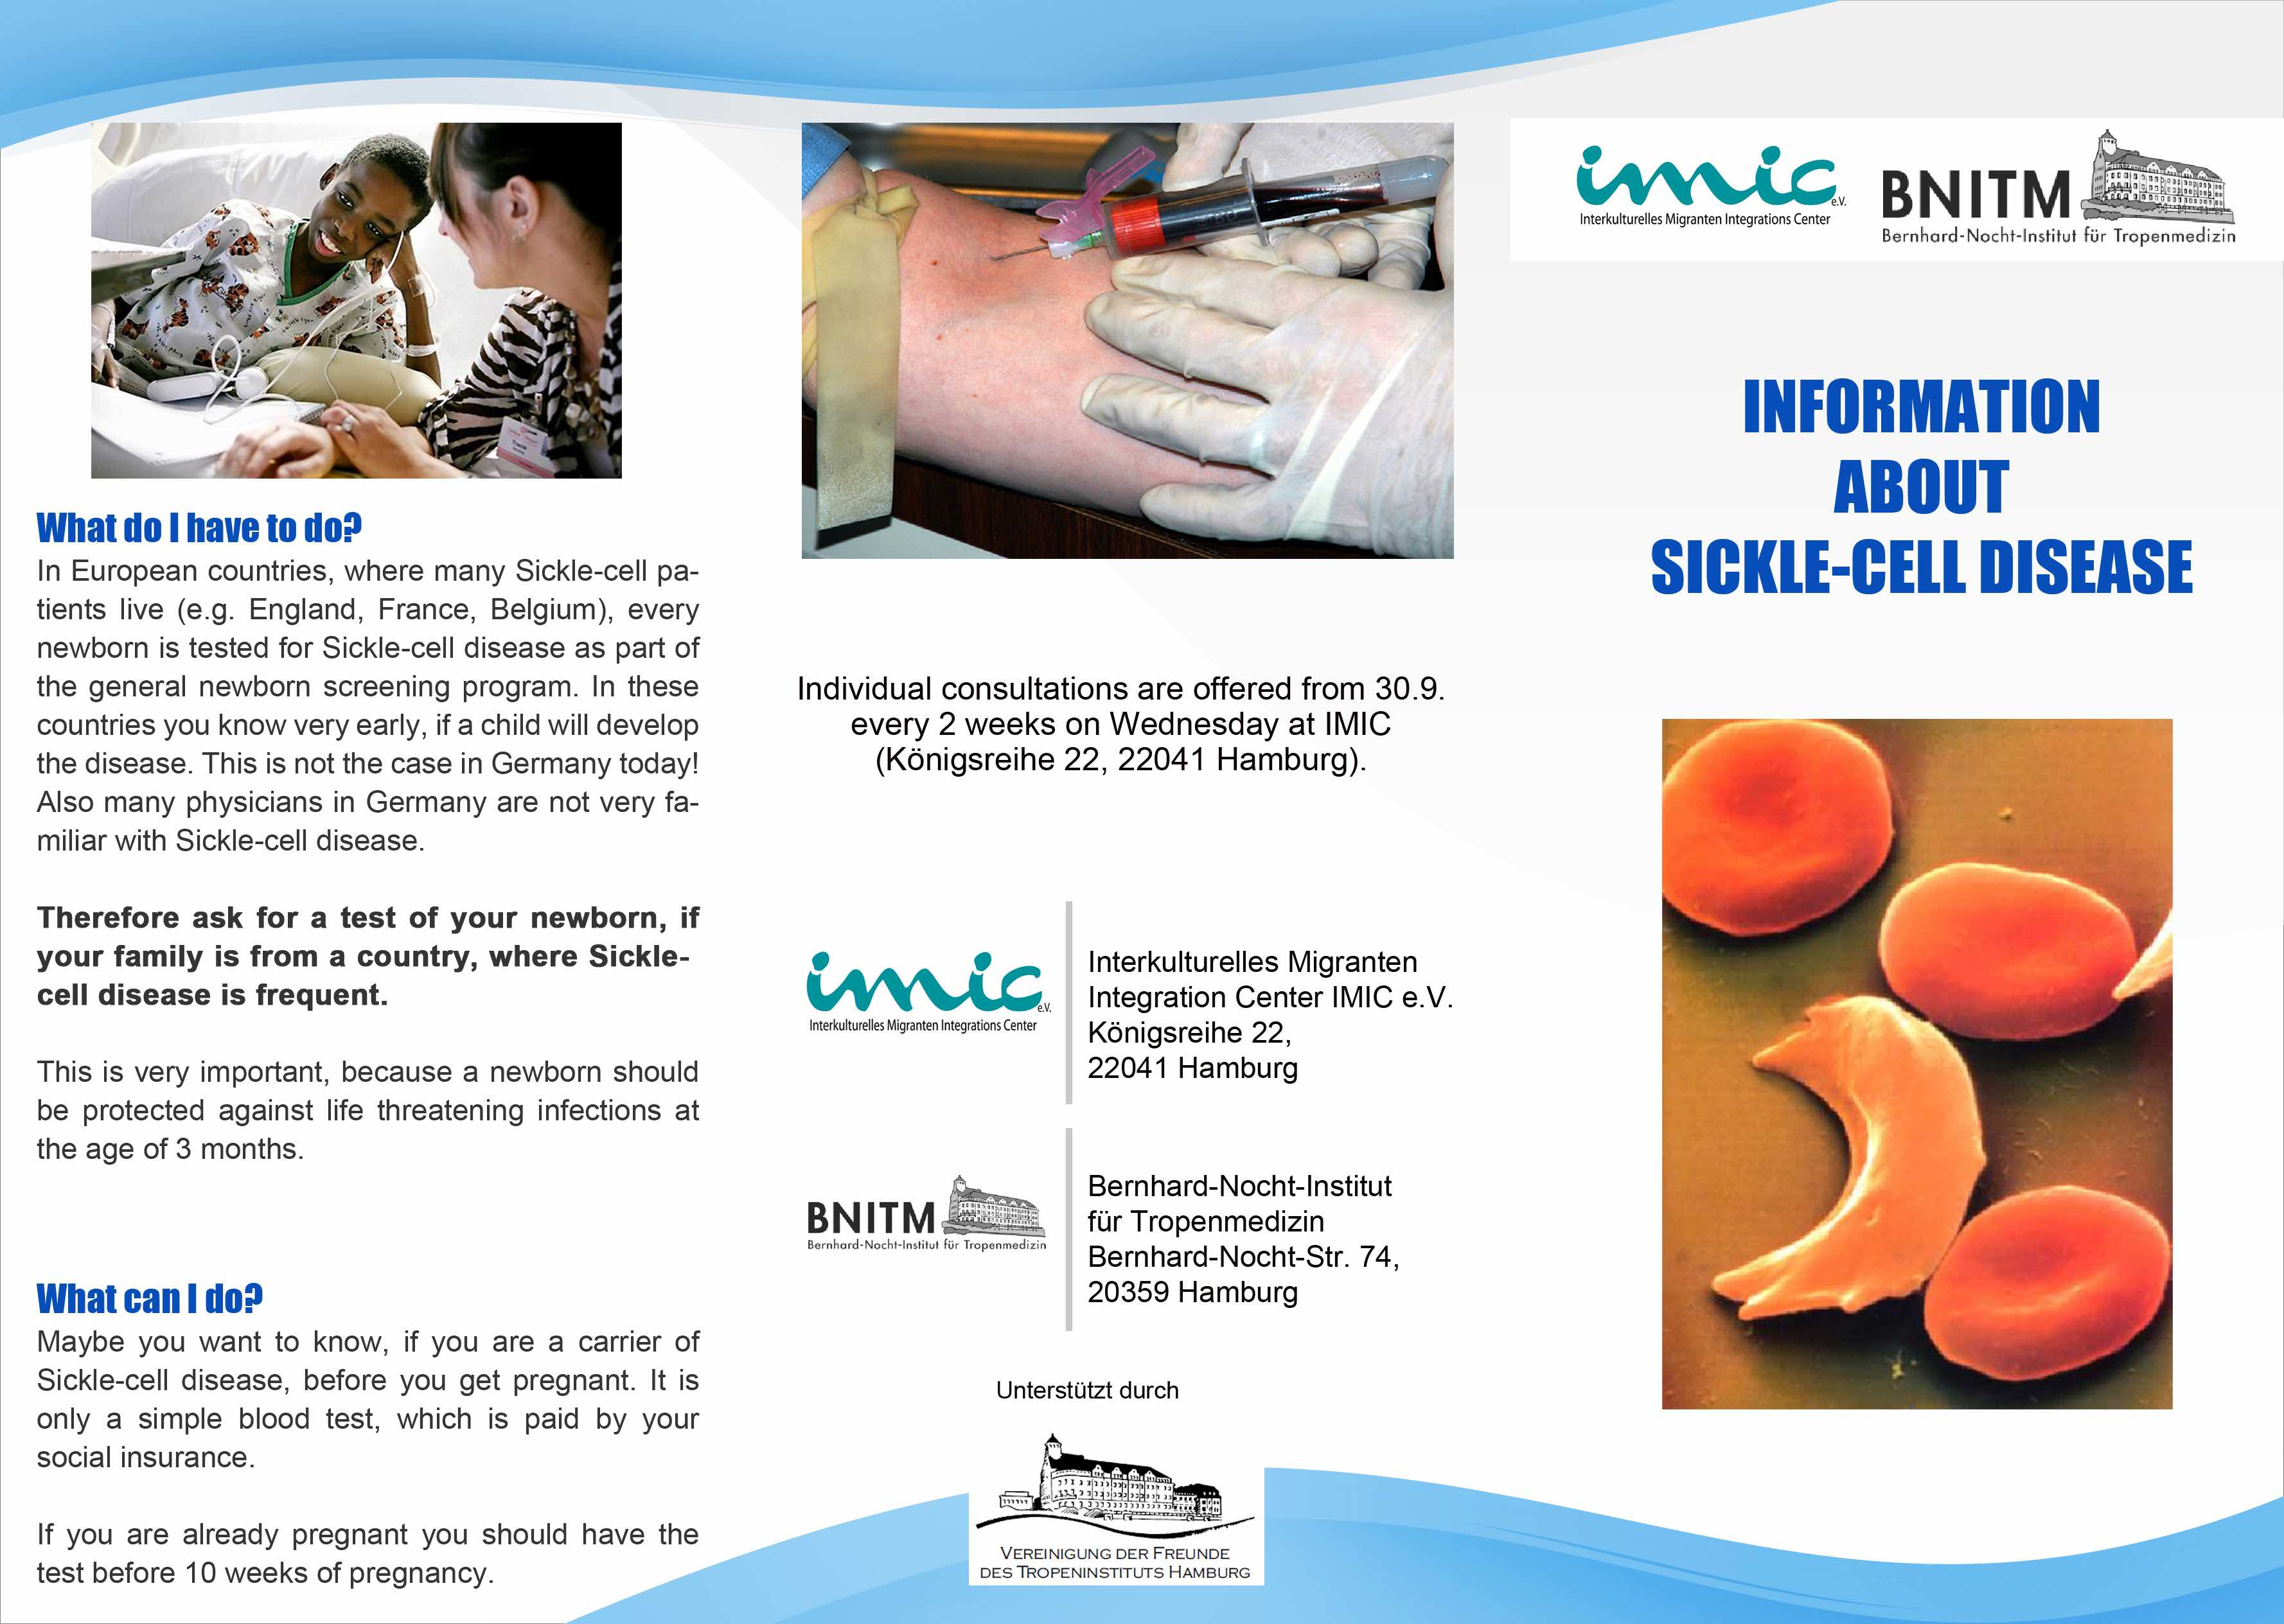 sickle cell flyer 1- info -english-3 Kopie 2